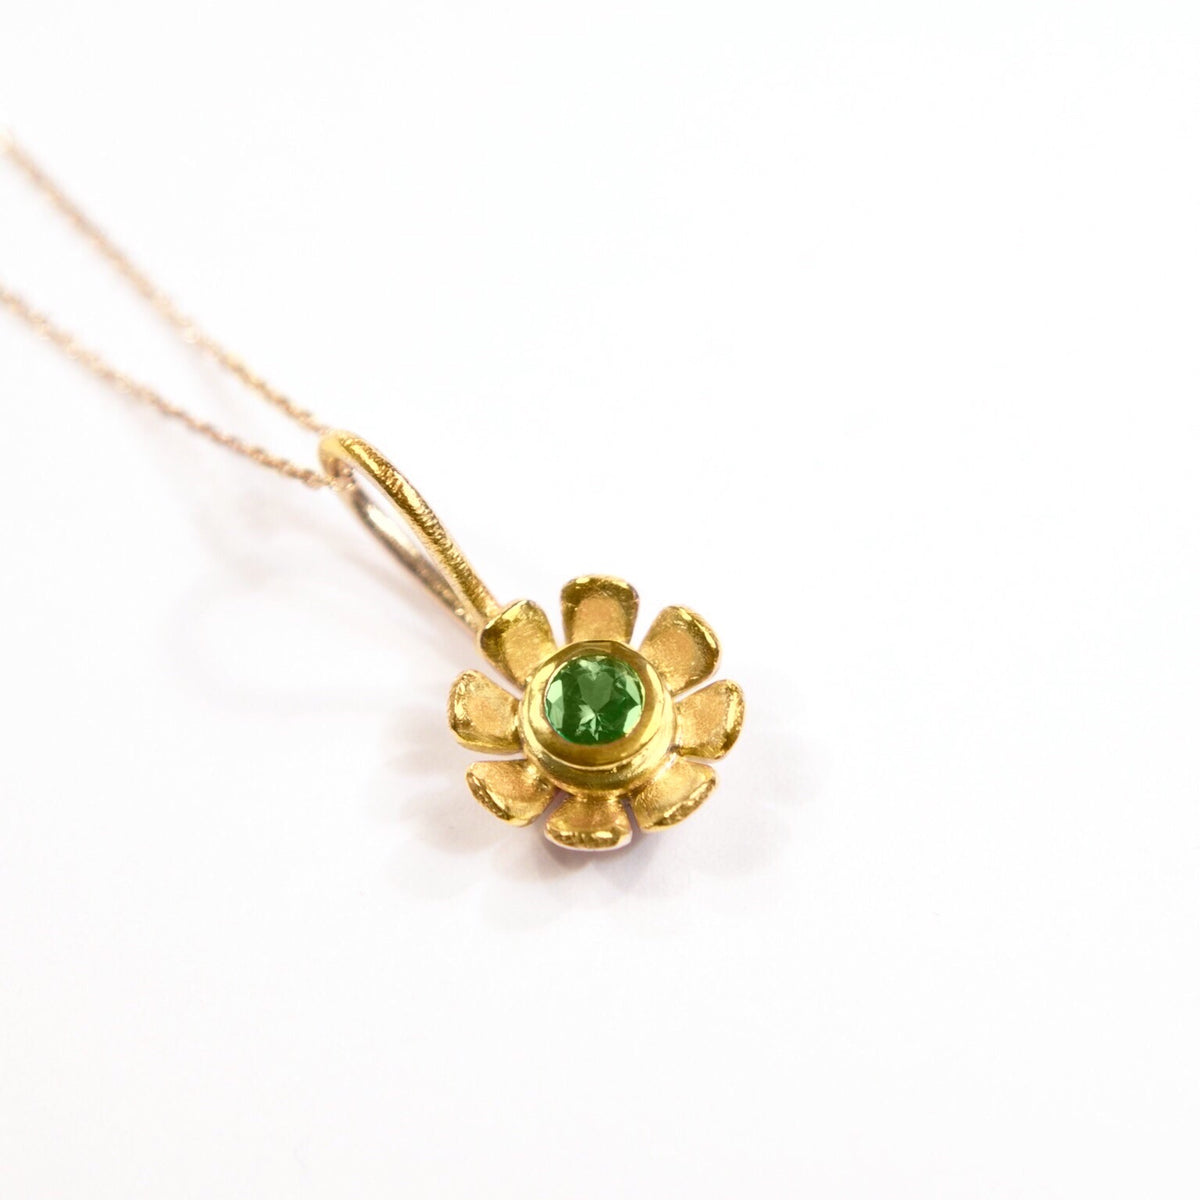 Daisy Flower Pendant: 18ct Yellow Gold, Small Daisy, Emerald